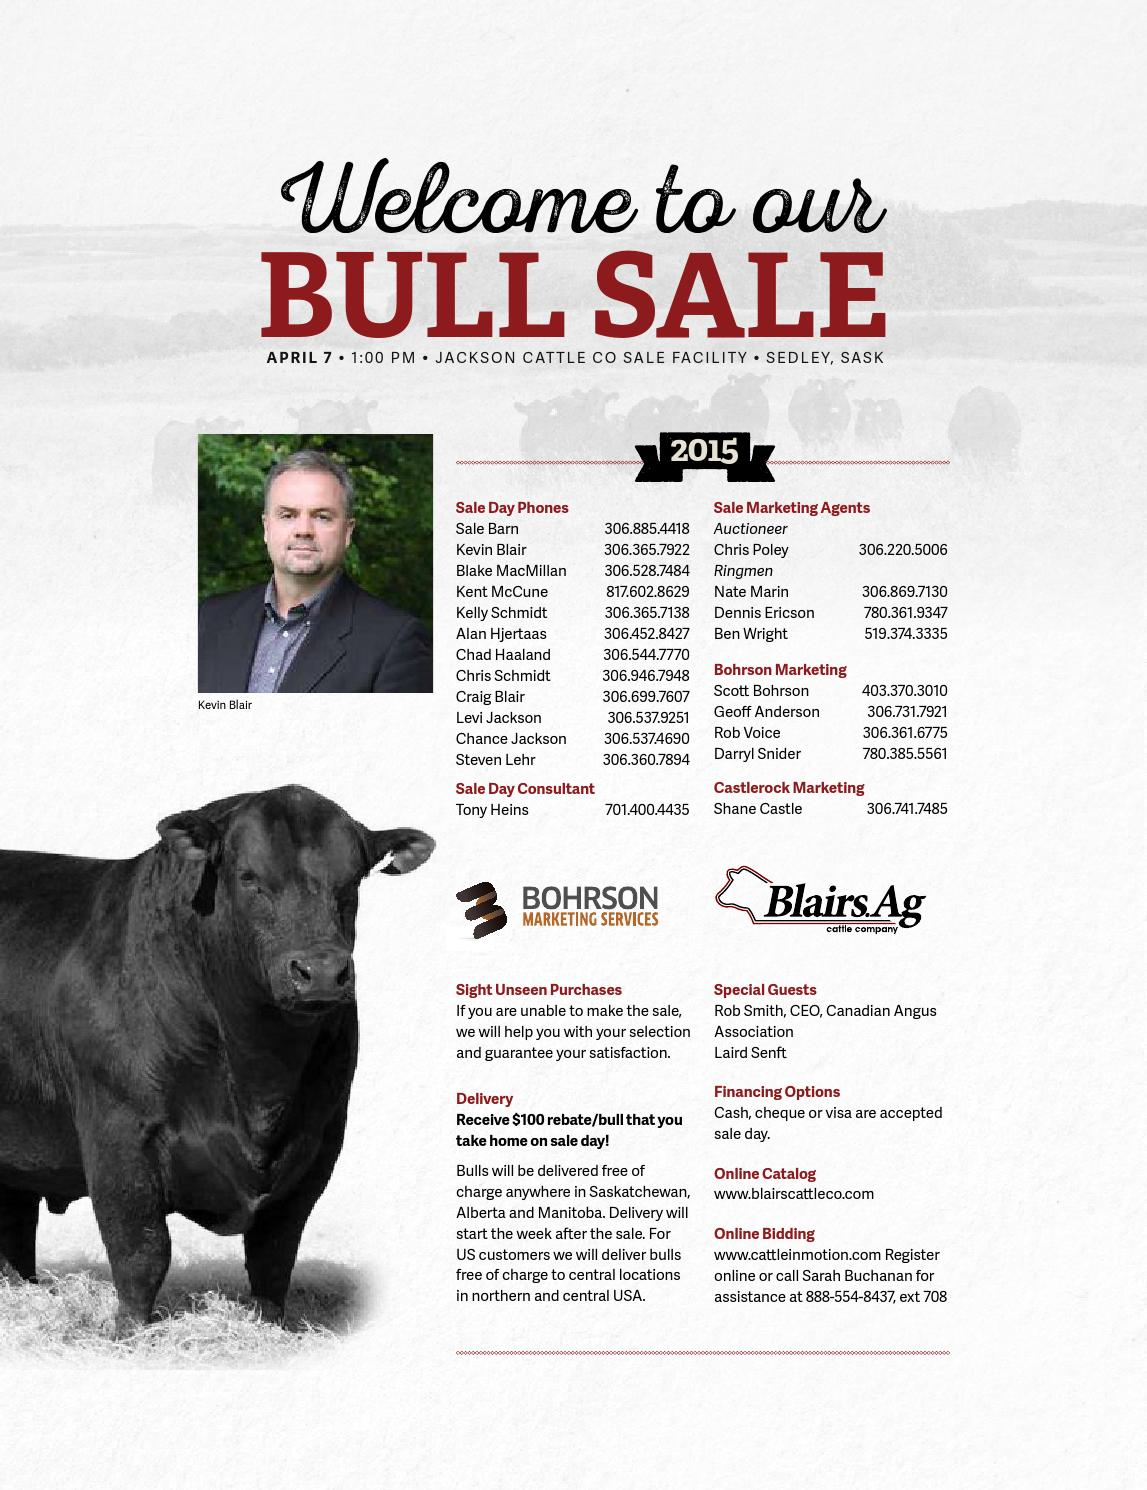 Blairs Ag Cattle Co  Pursuit of Excellence Bull Sale, 2015